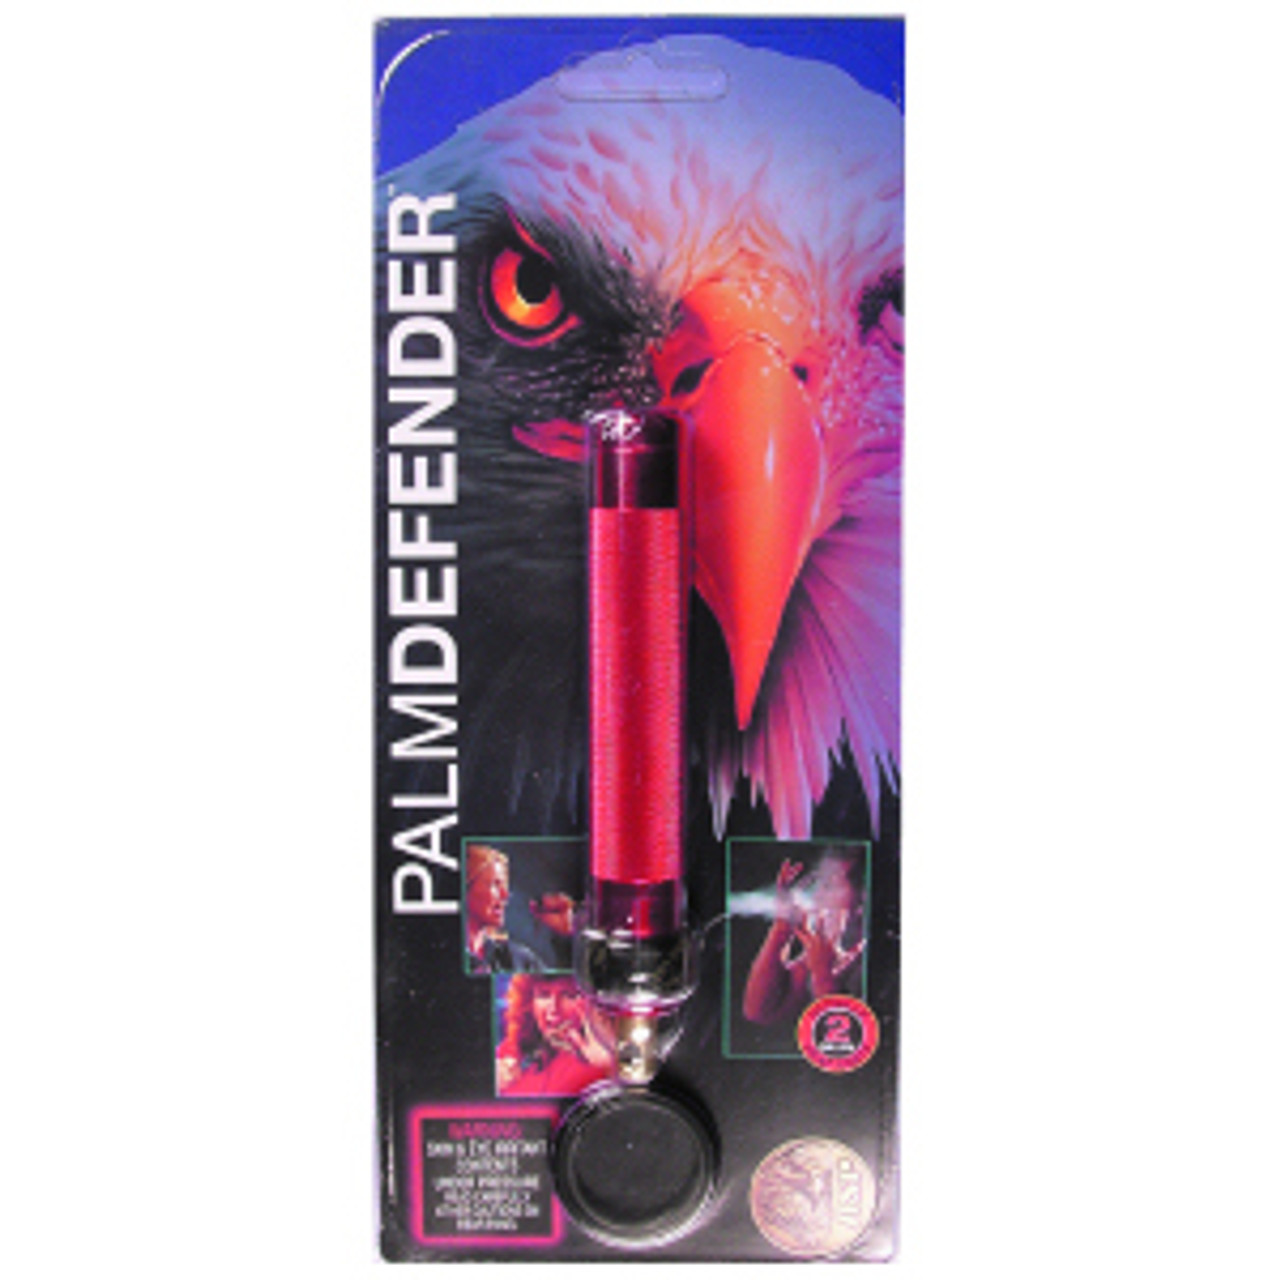 ASP 54953 Palm Defender Aerosol, 6061 T6 Aerospace Aluminum Construction, Red